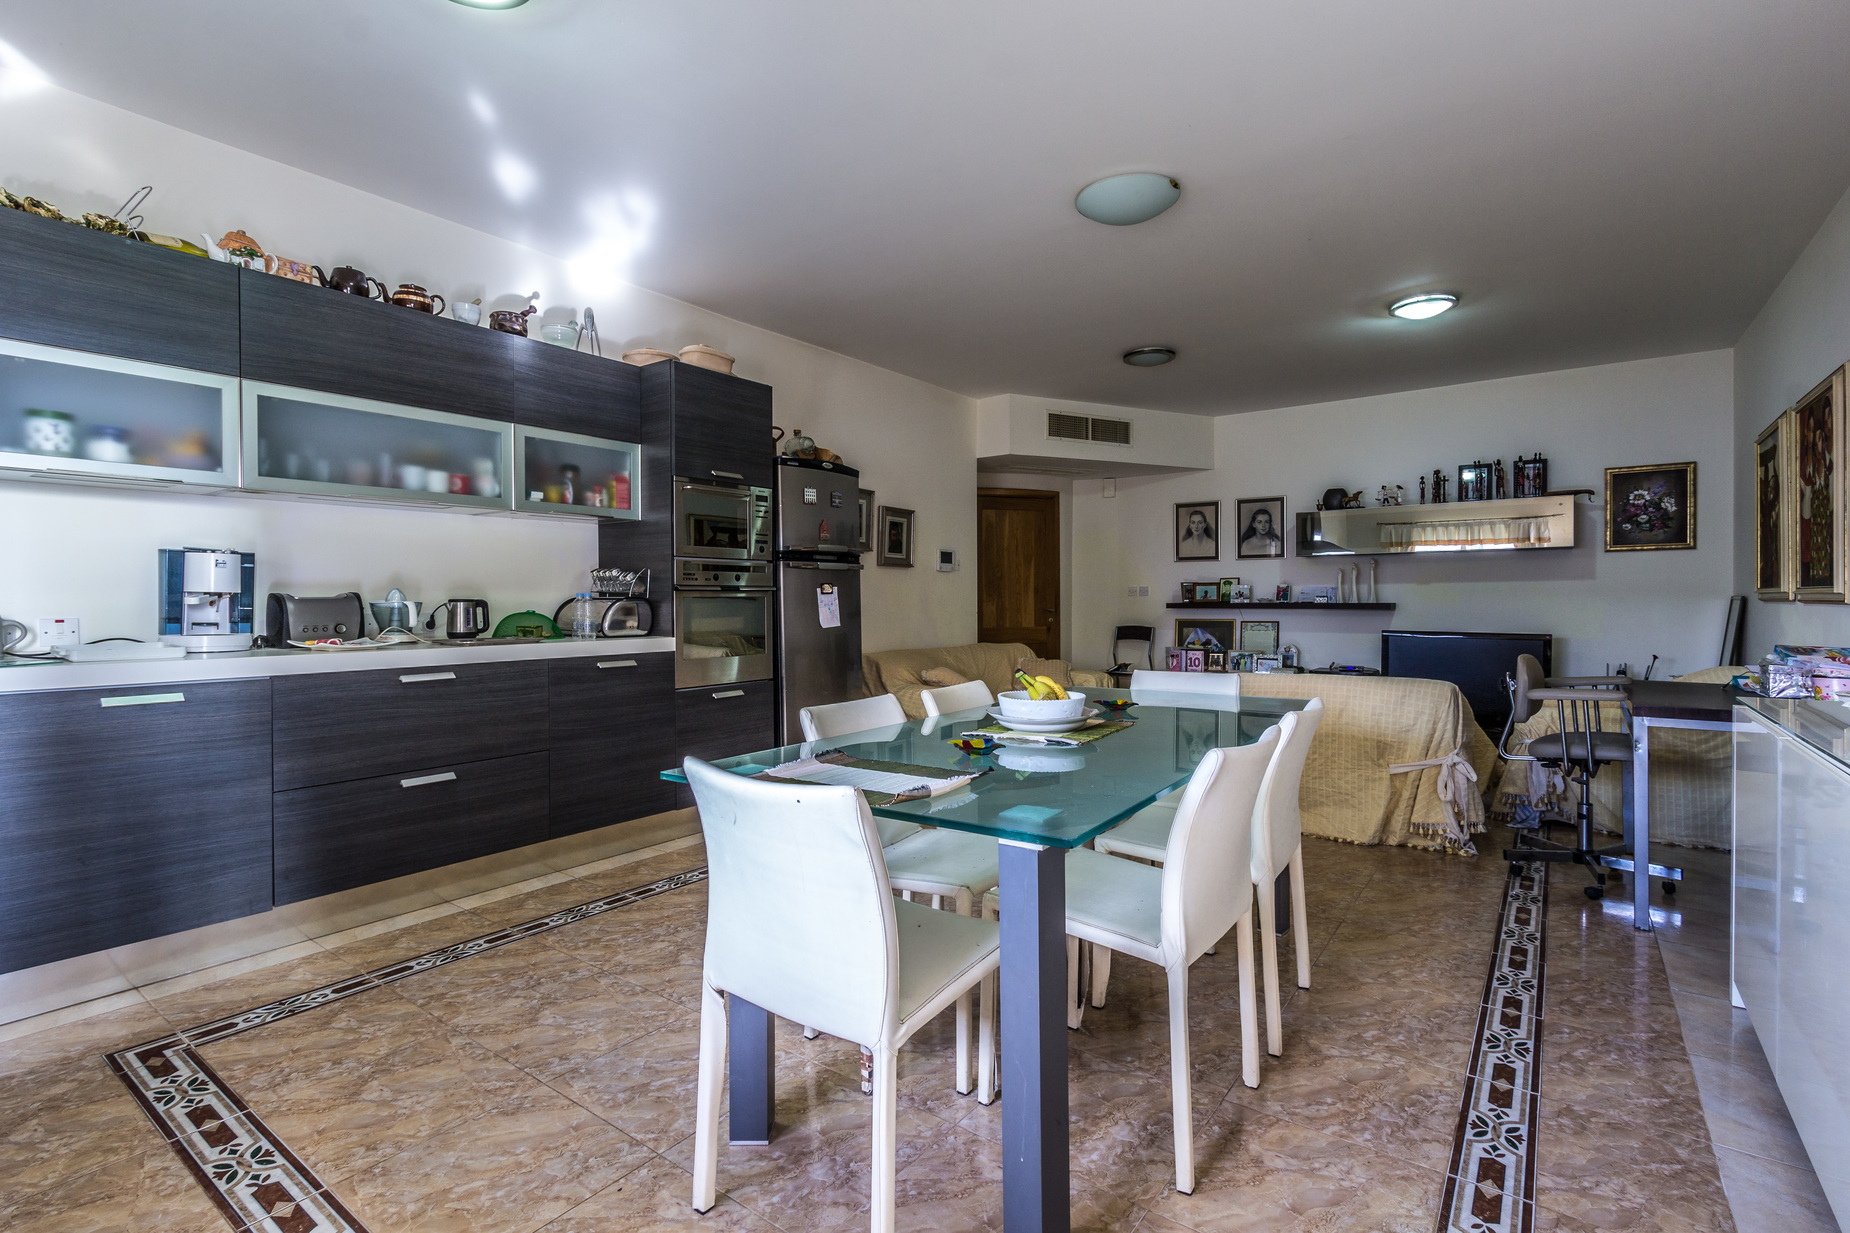 3 bed Apartment For Sale in Rabat, Rabat - thumb 8